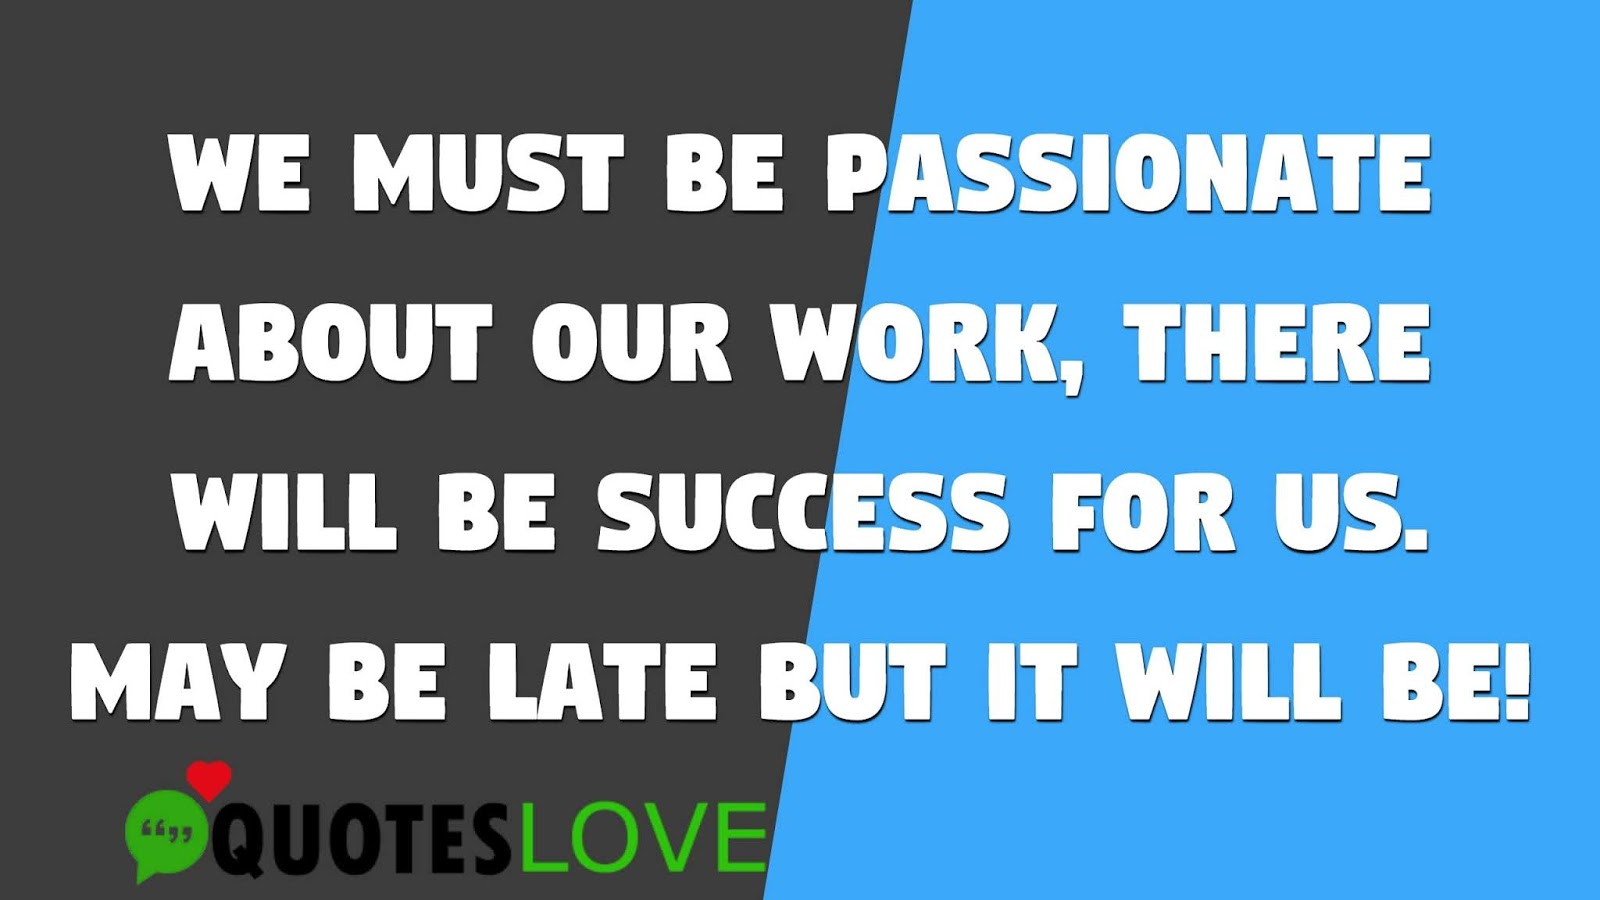 We must be passionate about our work, there will be success for us. May be late but it will be!